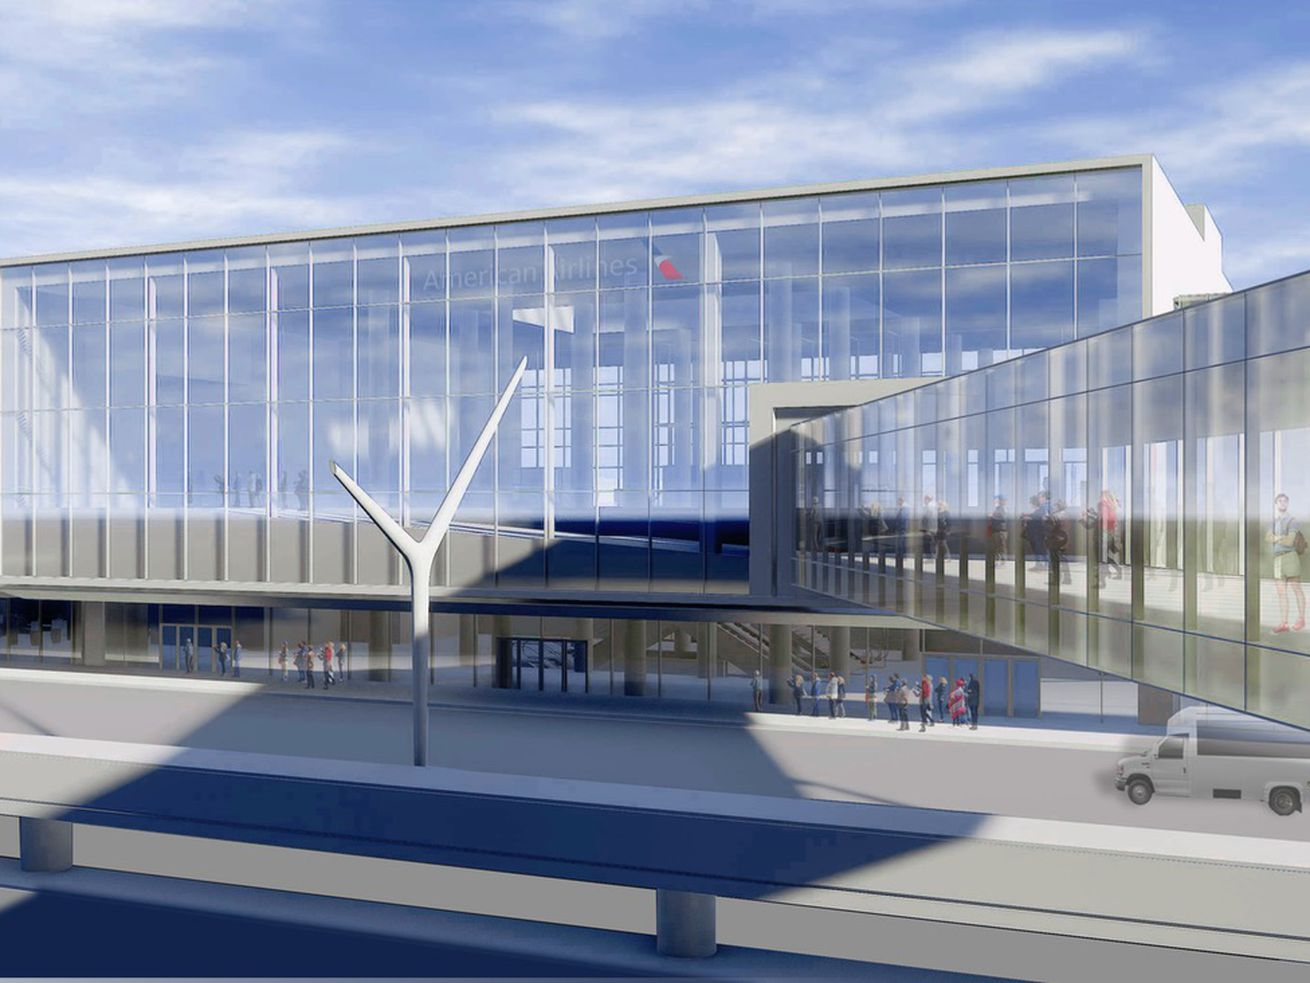 American Airlines plans to build a connection to the airport's future people mover system.